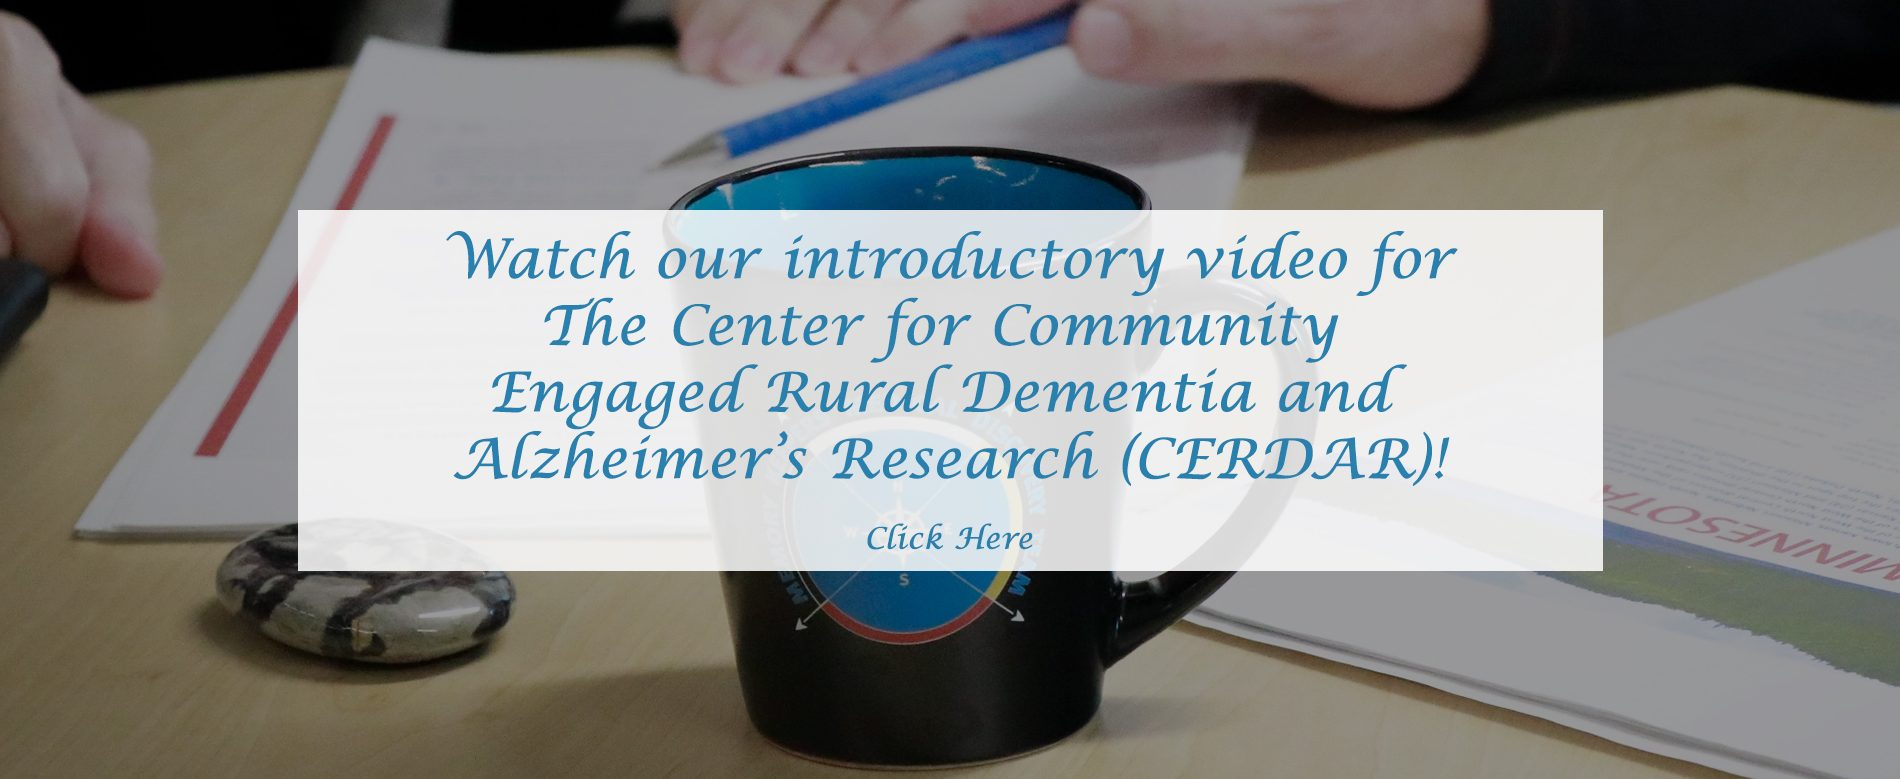 Watch our introductory video for The Center for Community Engaged Rural Dementia and Alzheimer's Research (CERDAR)!